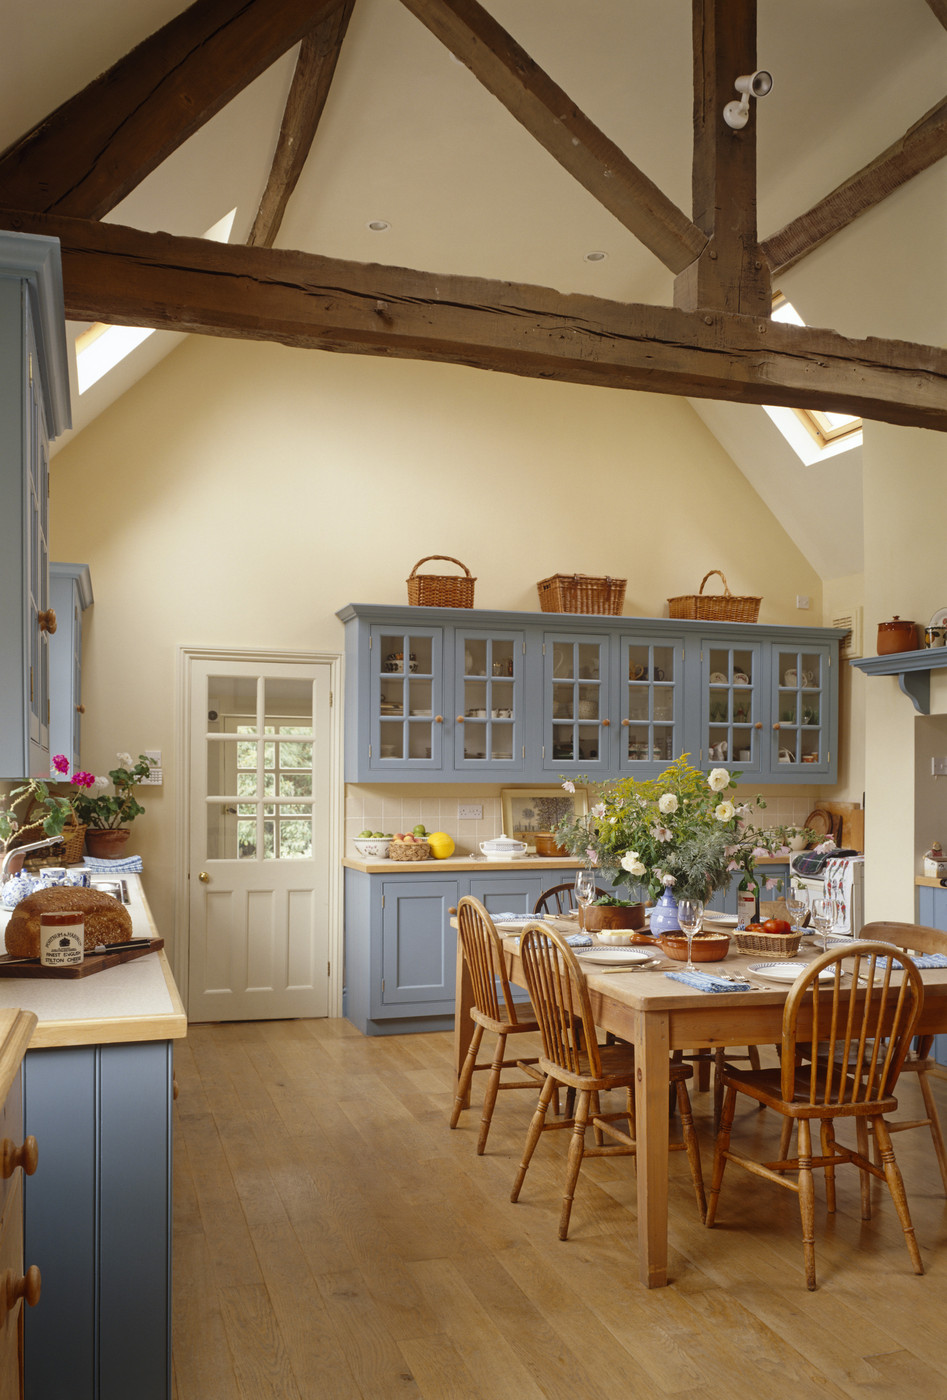 Country Kitchen Photos 134 of 203